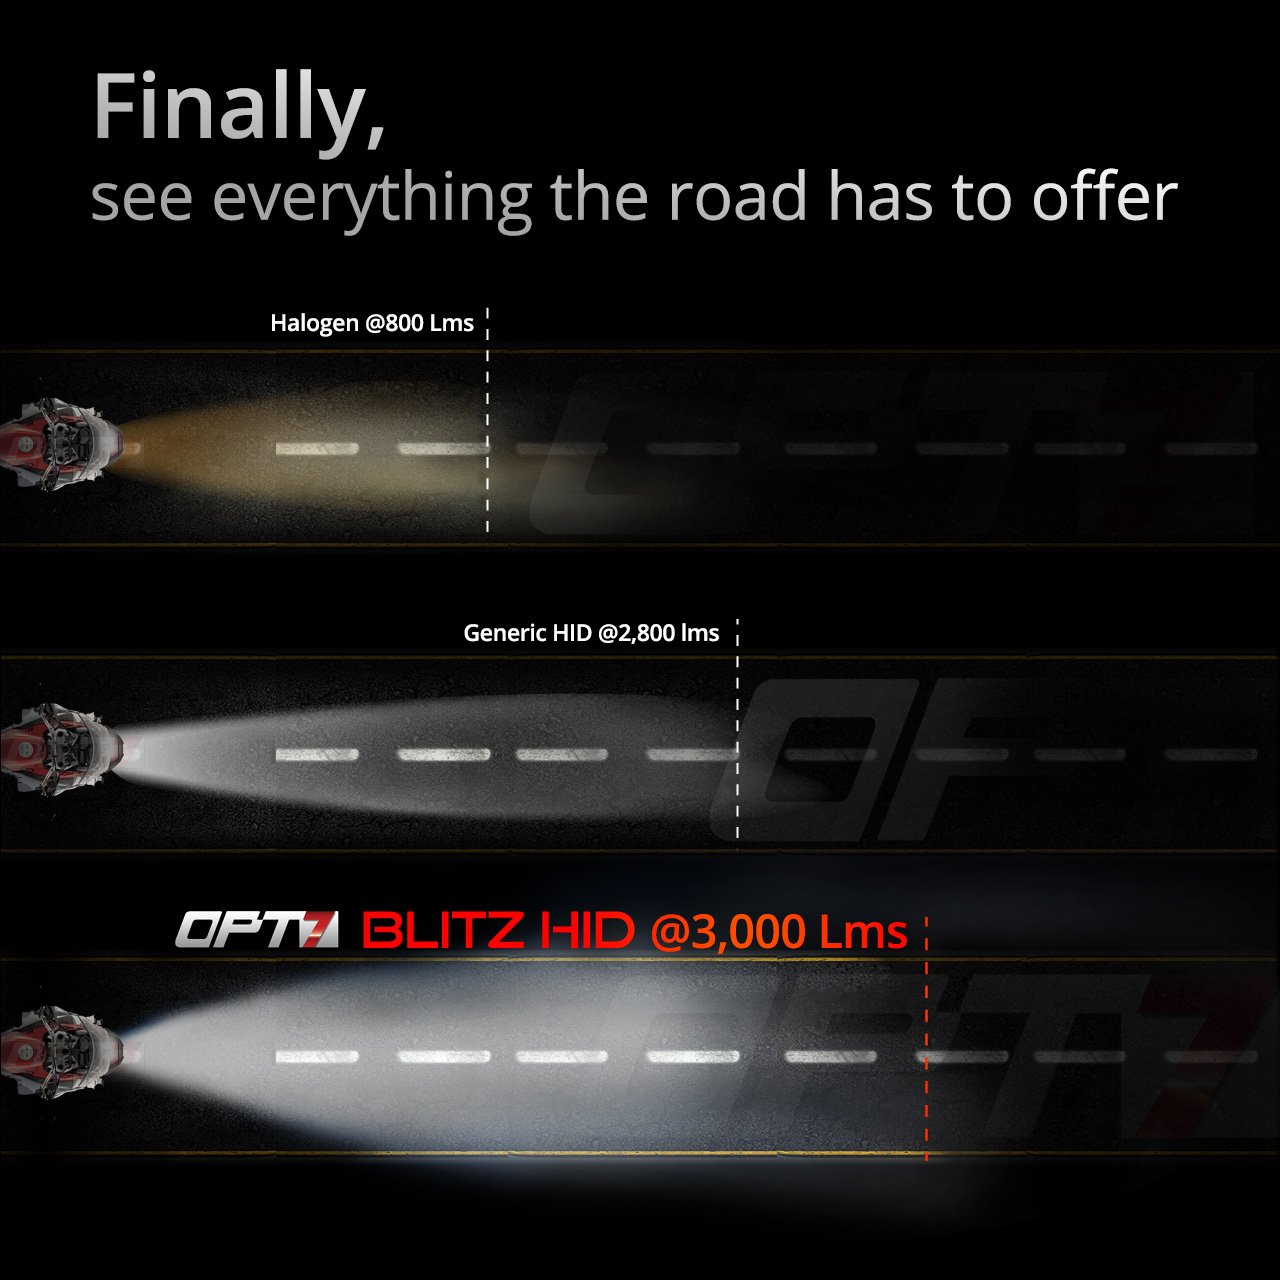 Opt7 Blitz 35w Dual Motorcycle Hid Kit 4x Brighter All Bulb Sizes And Colors Simple Install 2 Yr Warranty H7 8000k Ice Blue Genssi Led Wiring Harness